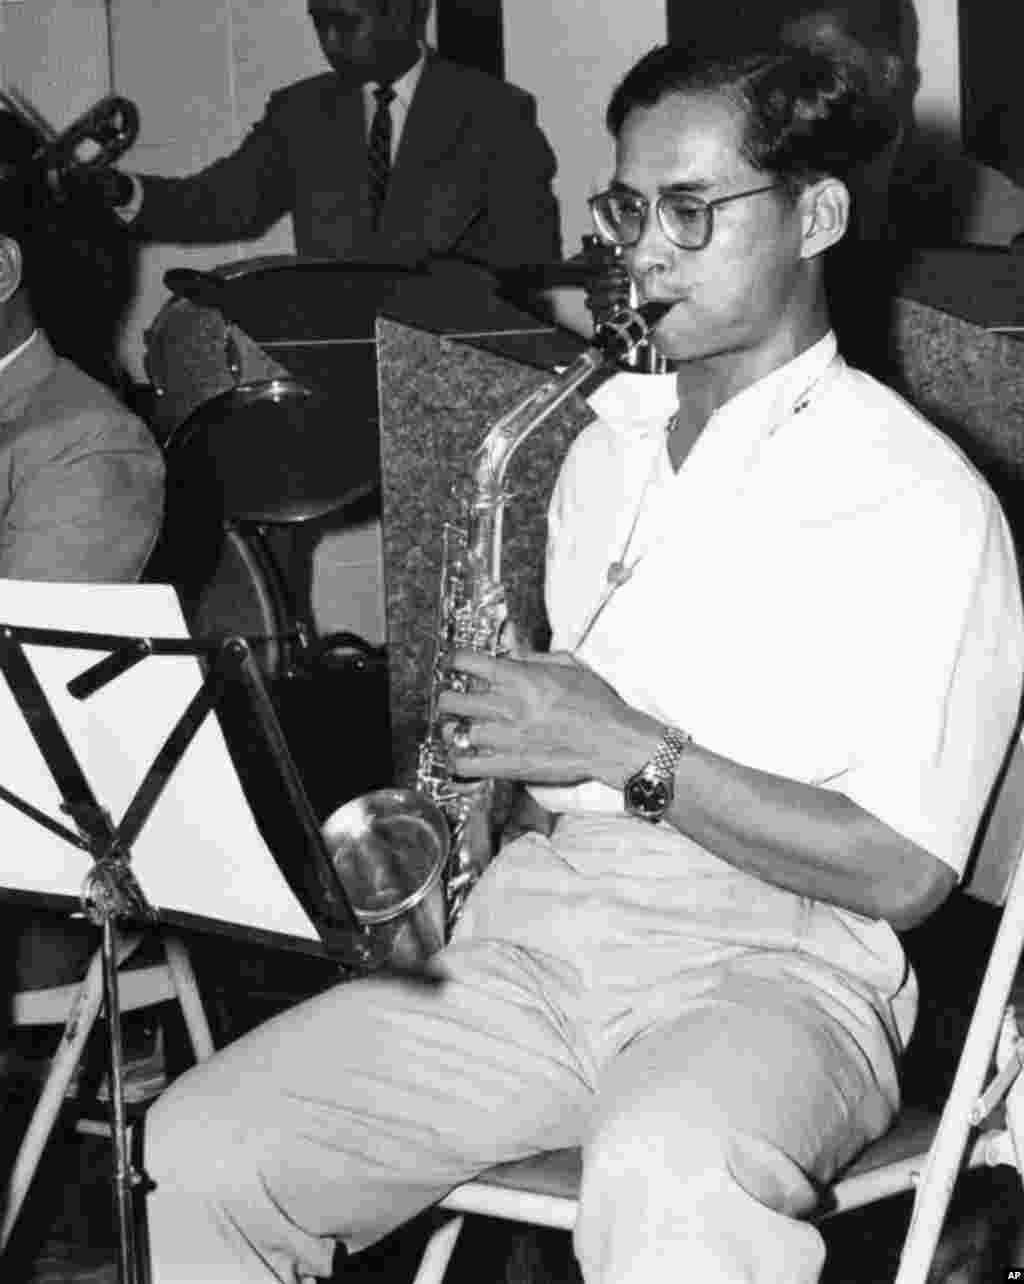 King Bhumibol Adulyadej clad in sports shirt and slacks, swings into a hot chorus on the alto sax with his 13-piece jazz band, Nov. 13, 1962.